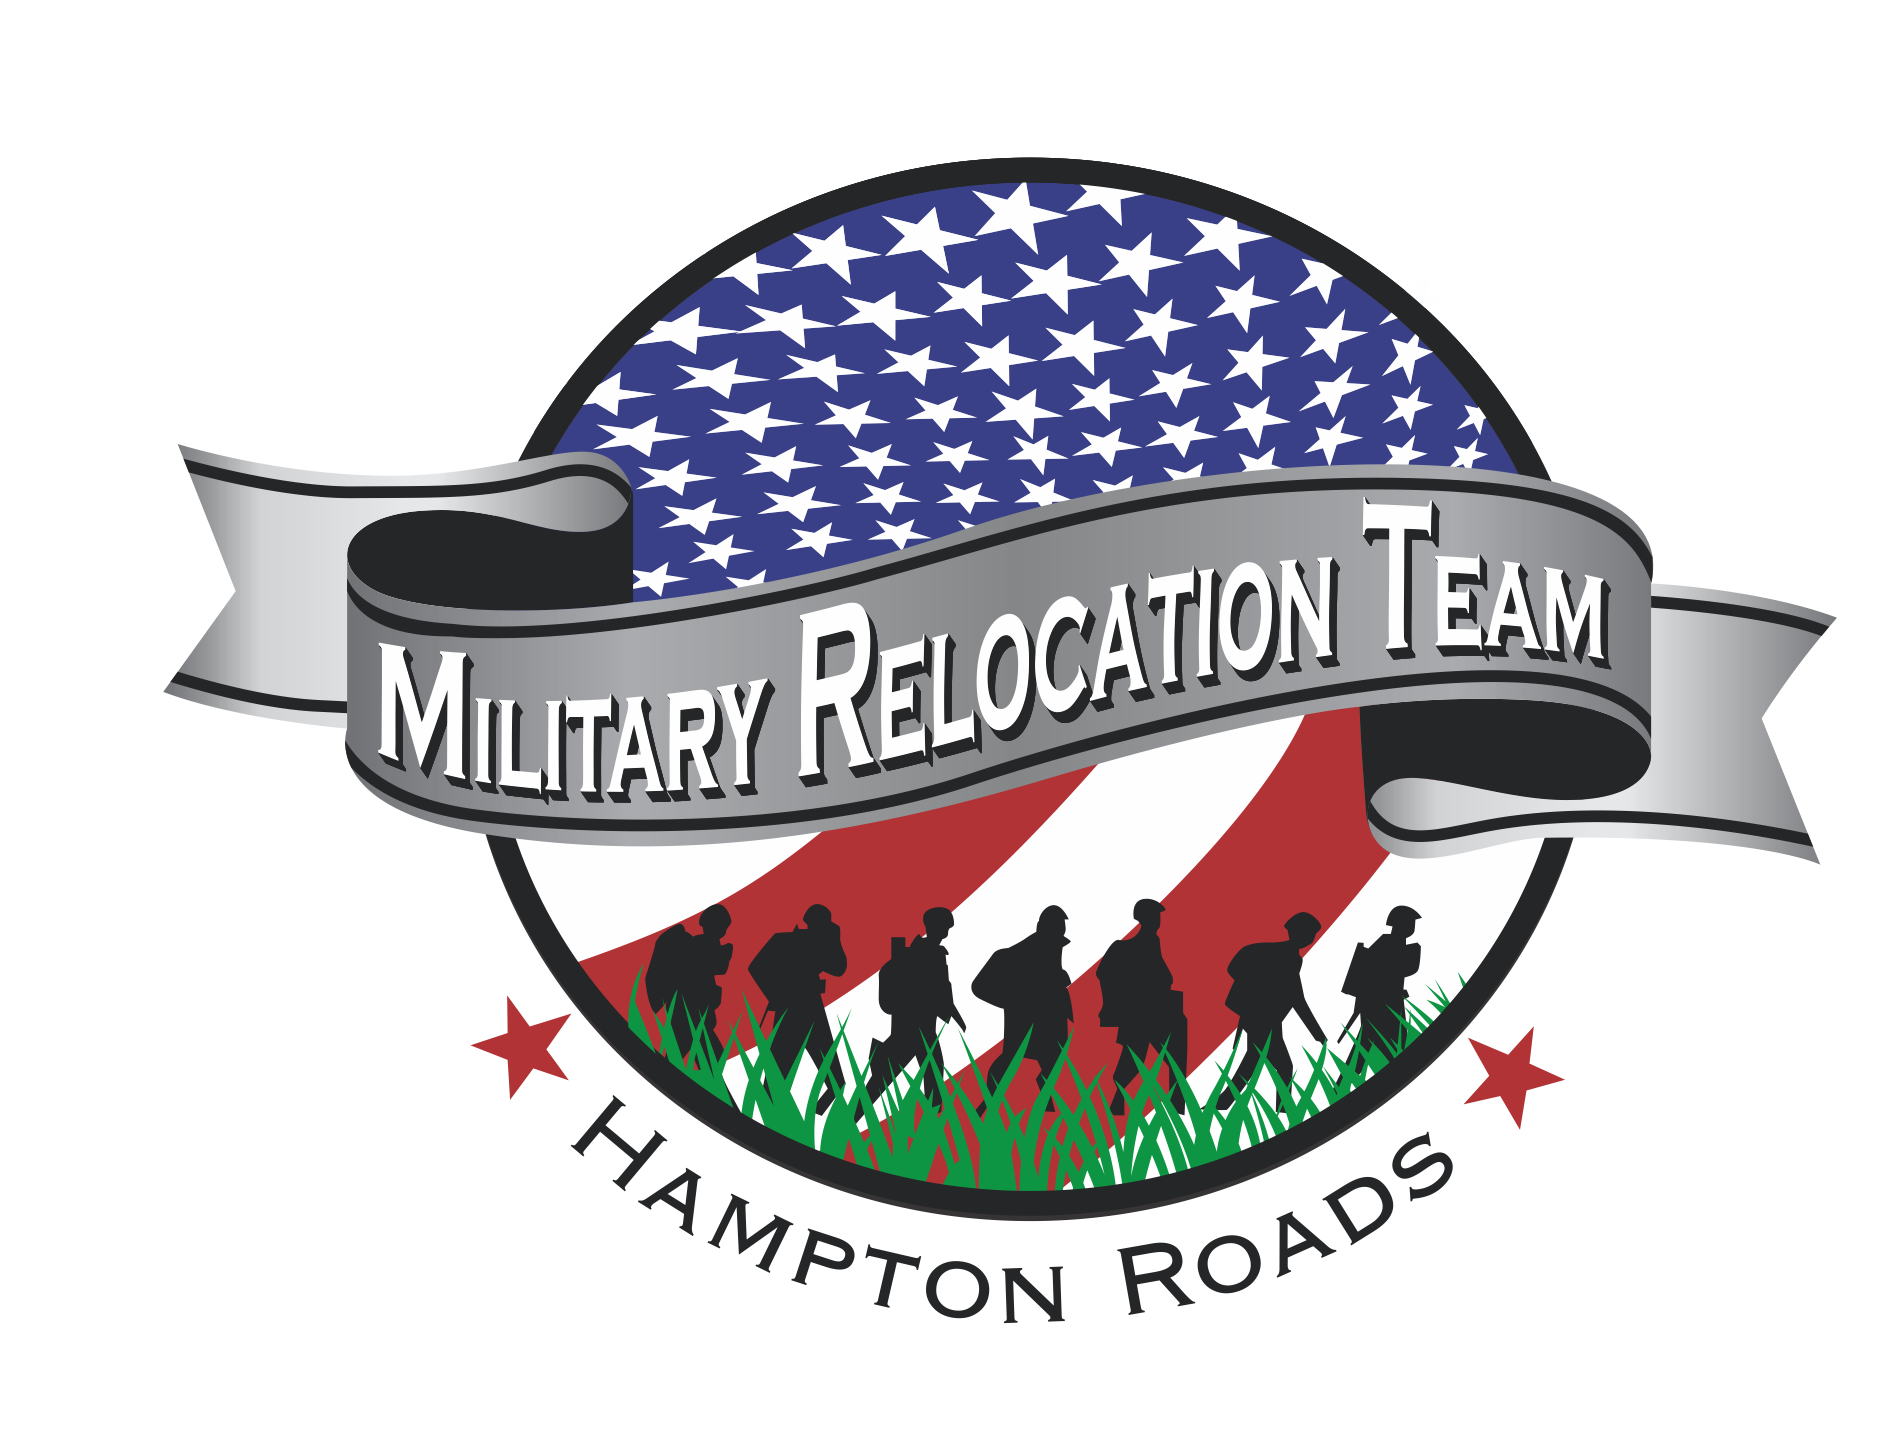 Military Relocation Team Logo